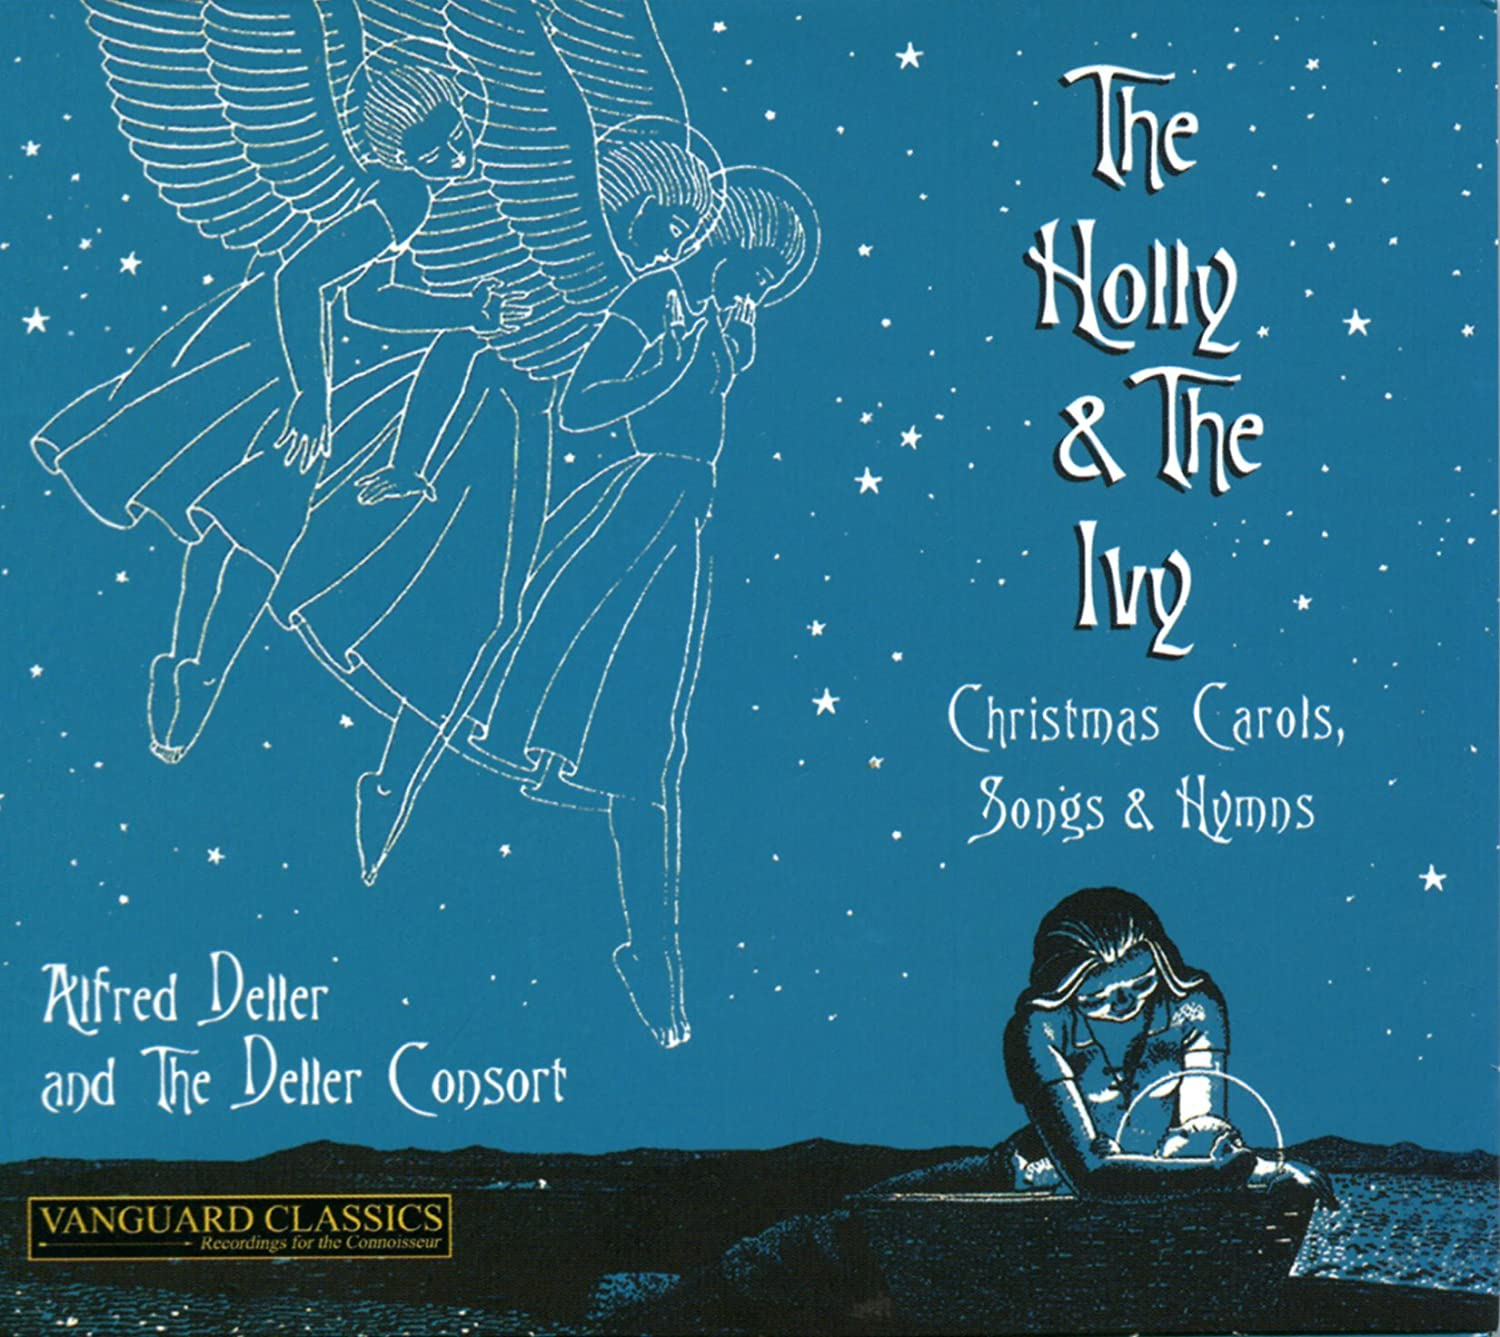 Amazon.com: The Holly and the Ivy: Christmas Carols, Songs & Hymns ...